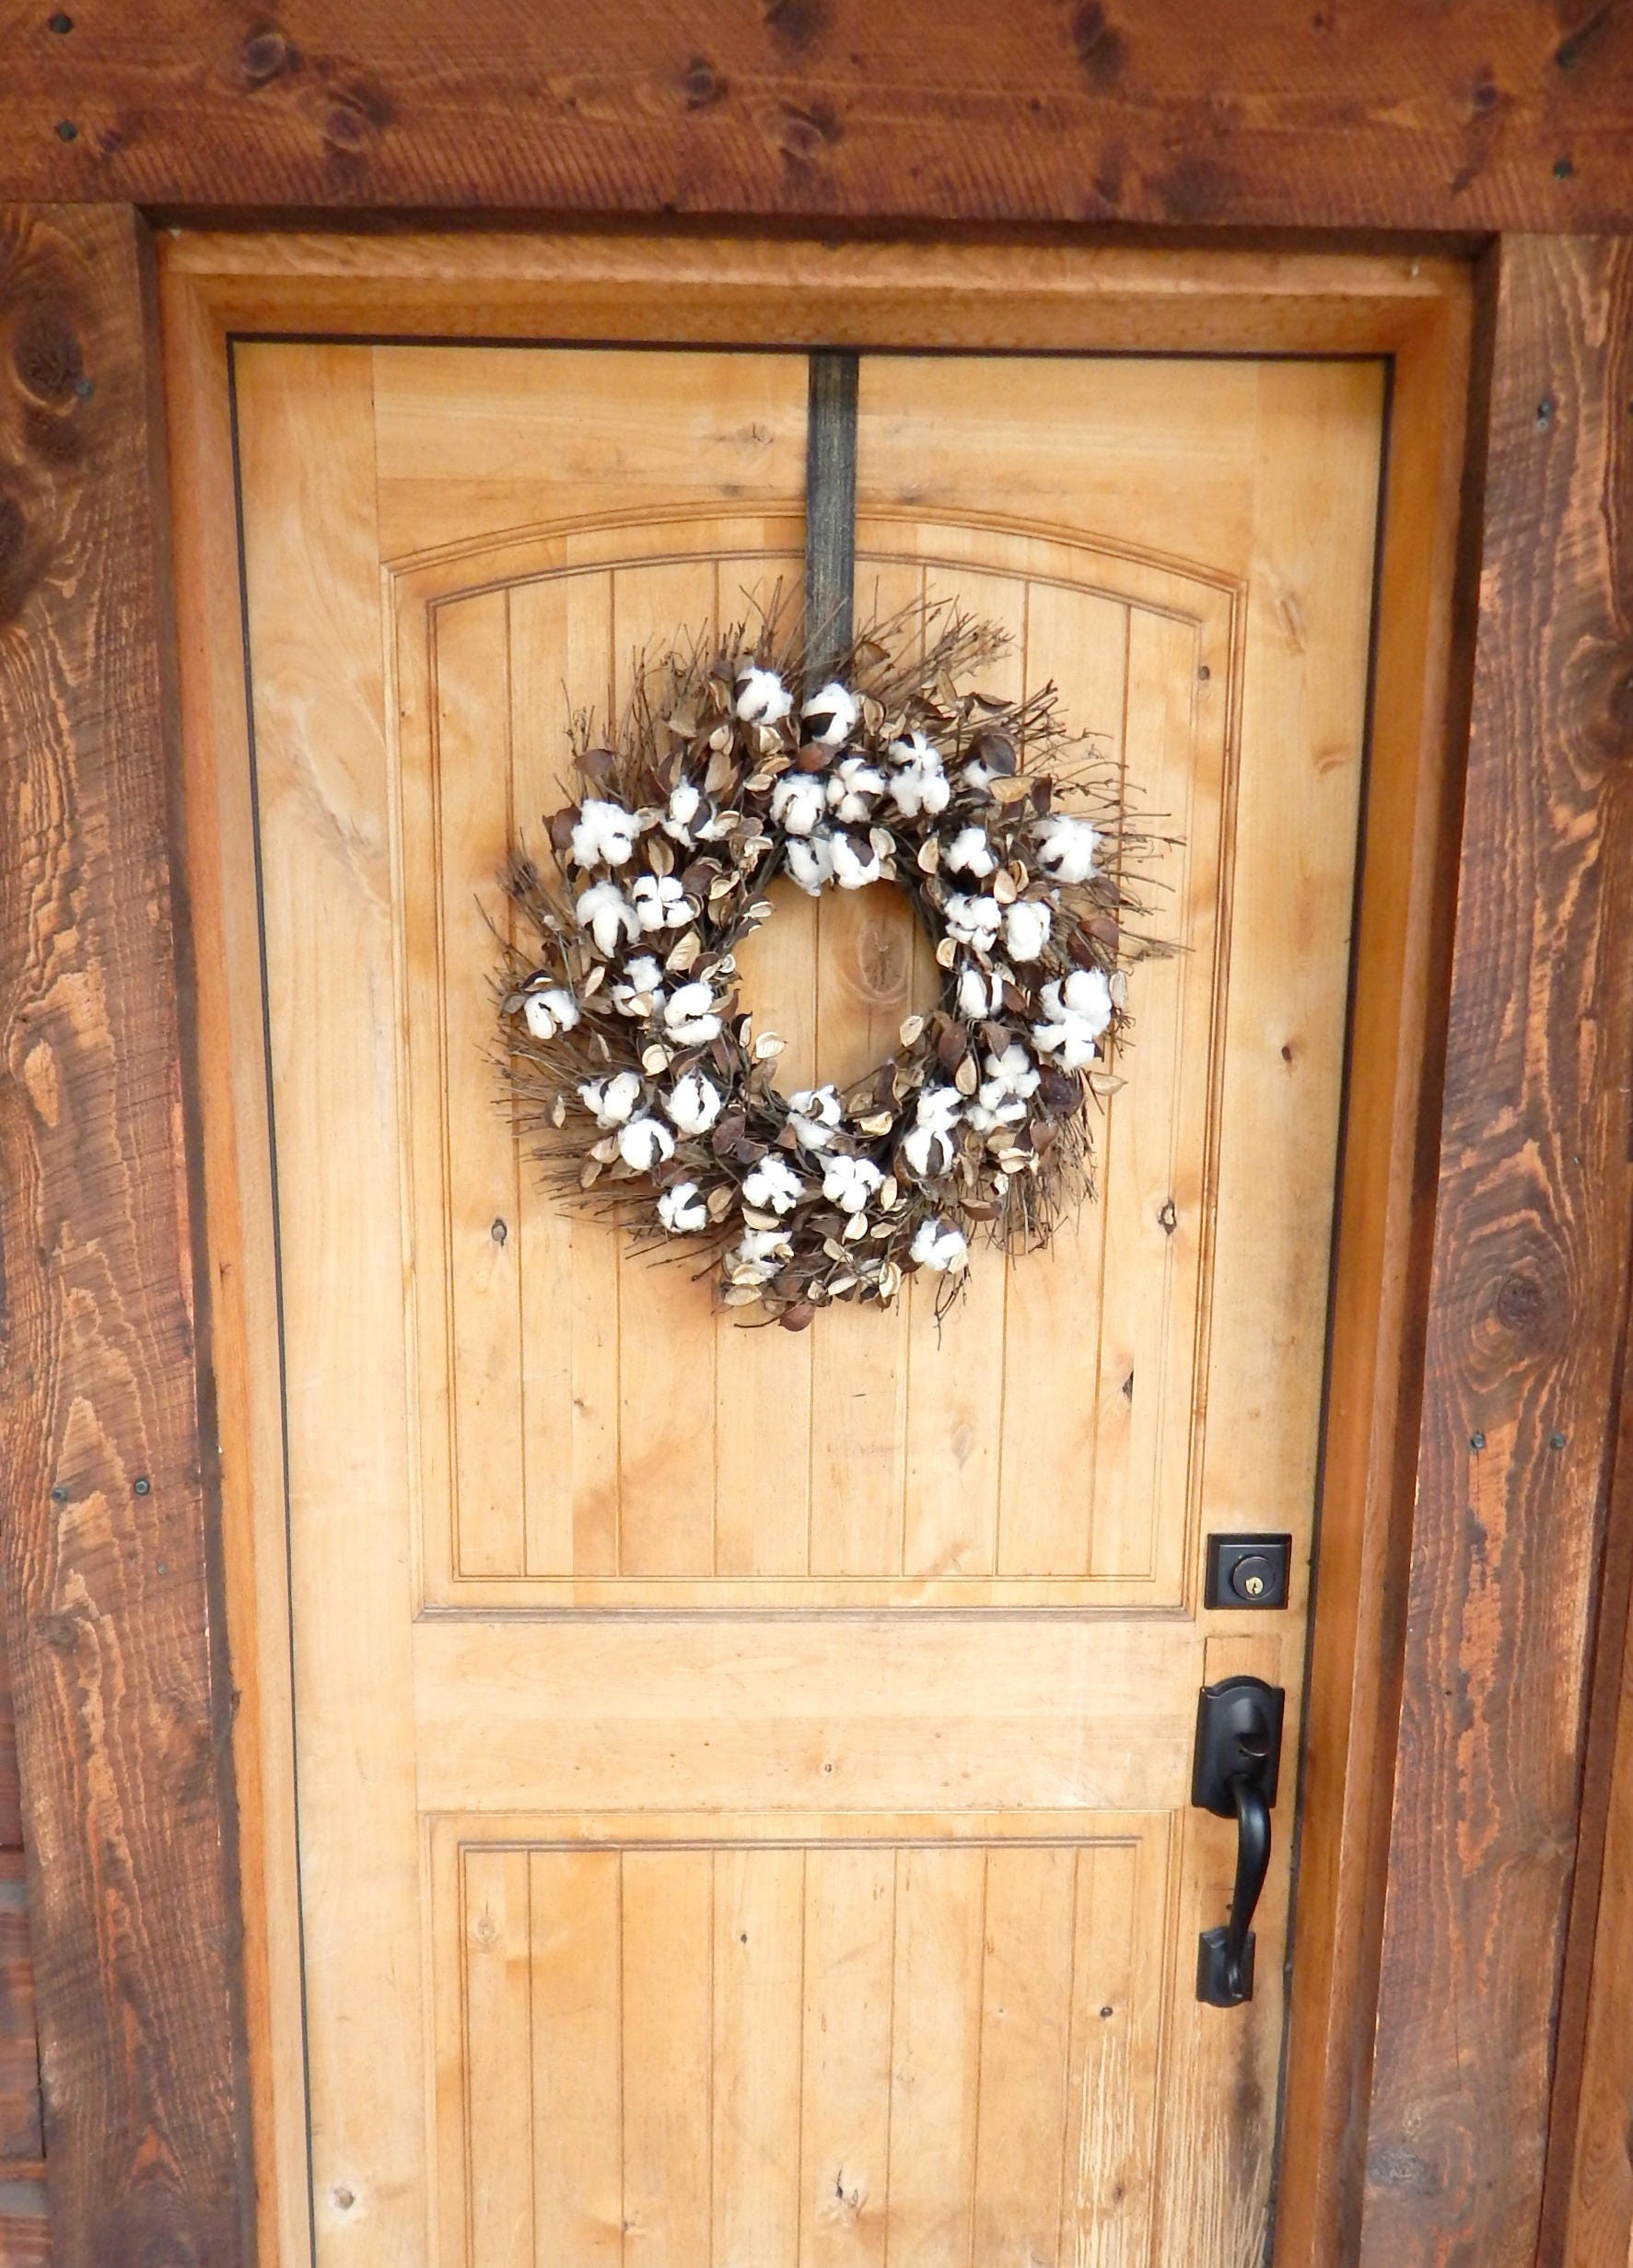 Farmhouse Wreath-Cotton Wreath-Fixer Upper Decor-Rustic